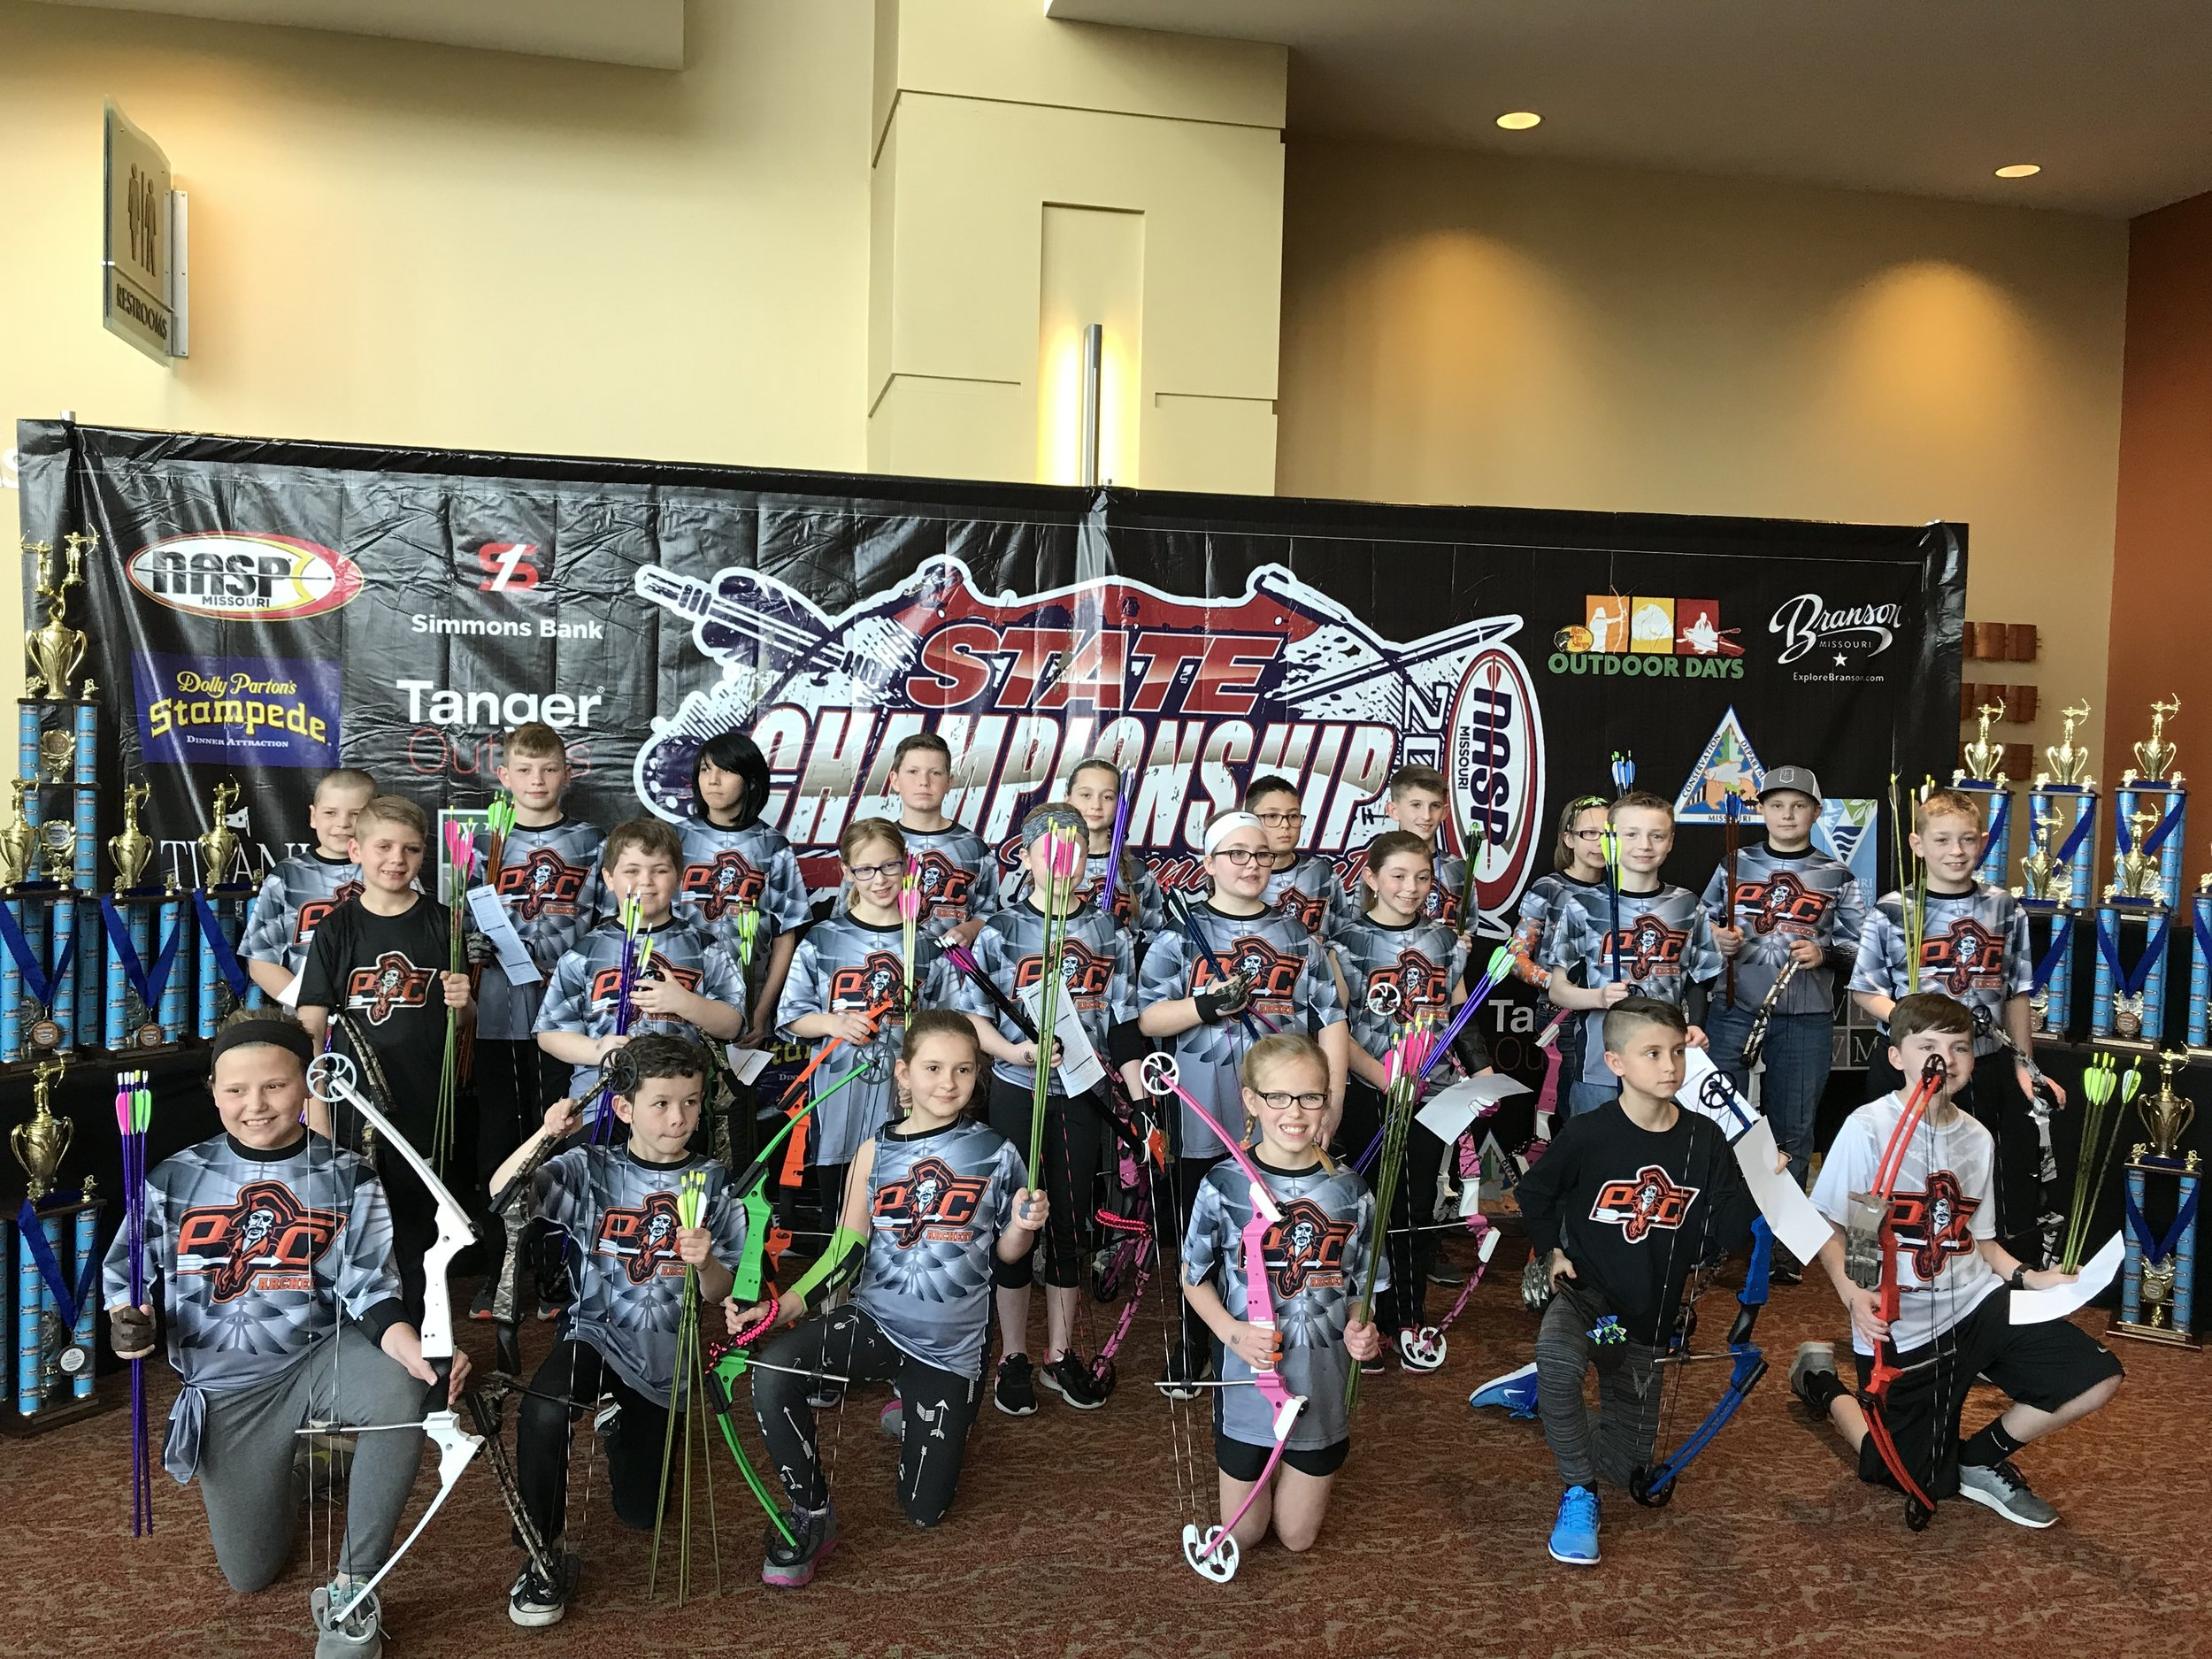 Contributed photo Platte County's Compass Elementary won the MoNASP 3D Tournament archery state championship this past weekend in Branson. The team also had the individual champion in the event as Porter Campbell had the highest score in the boys division.